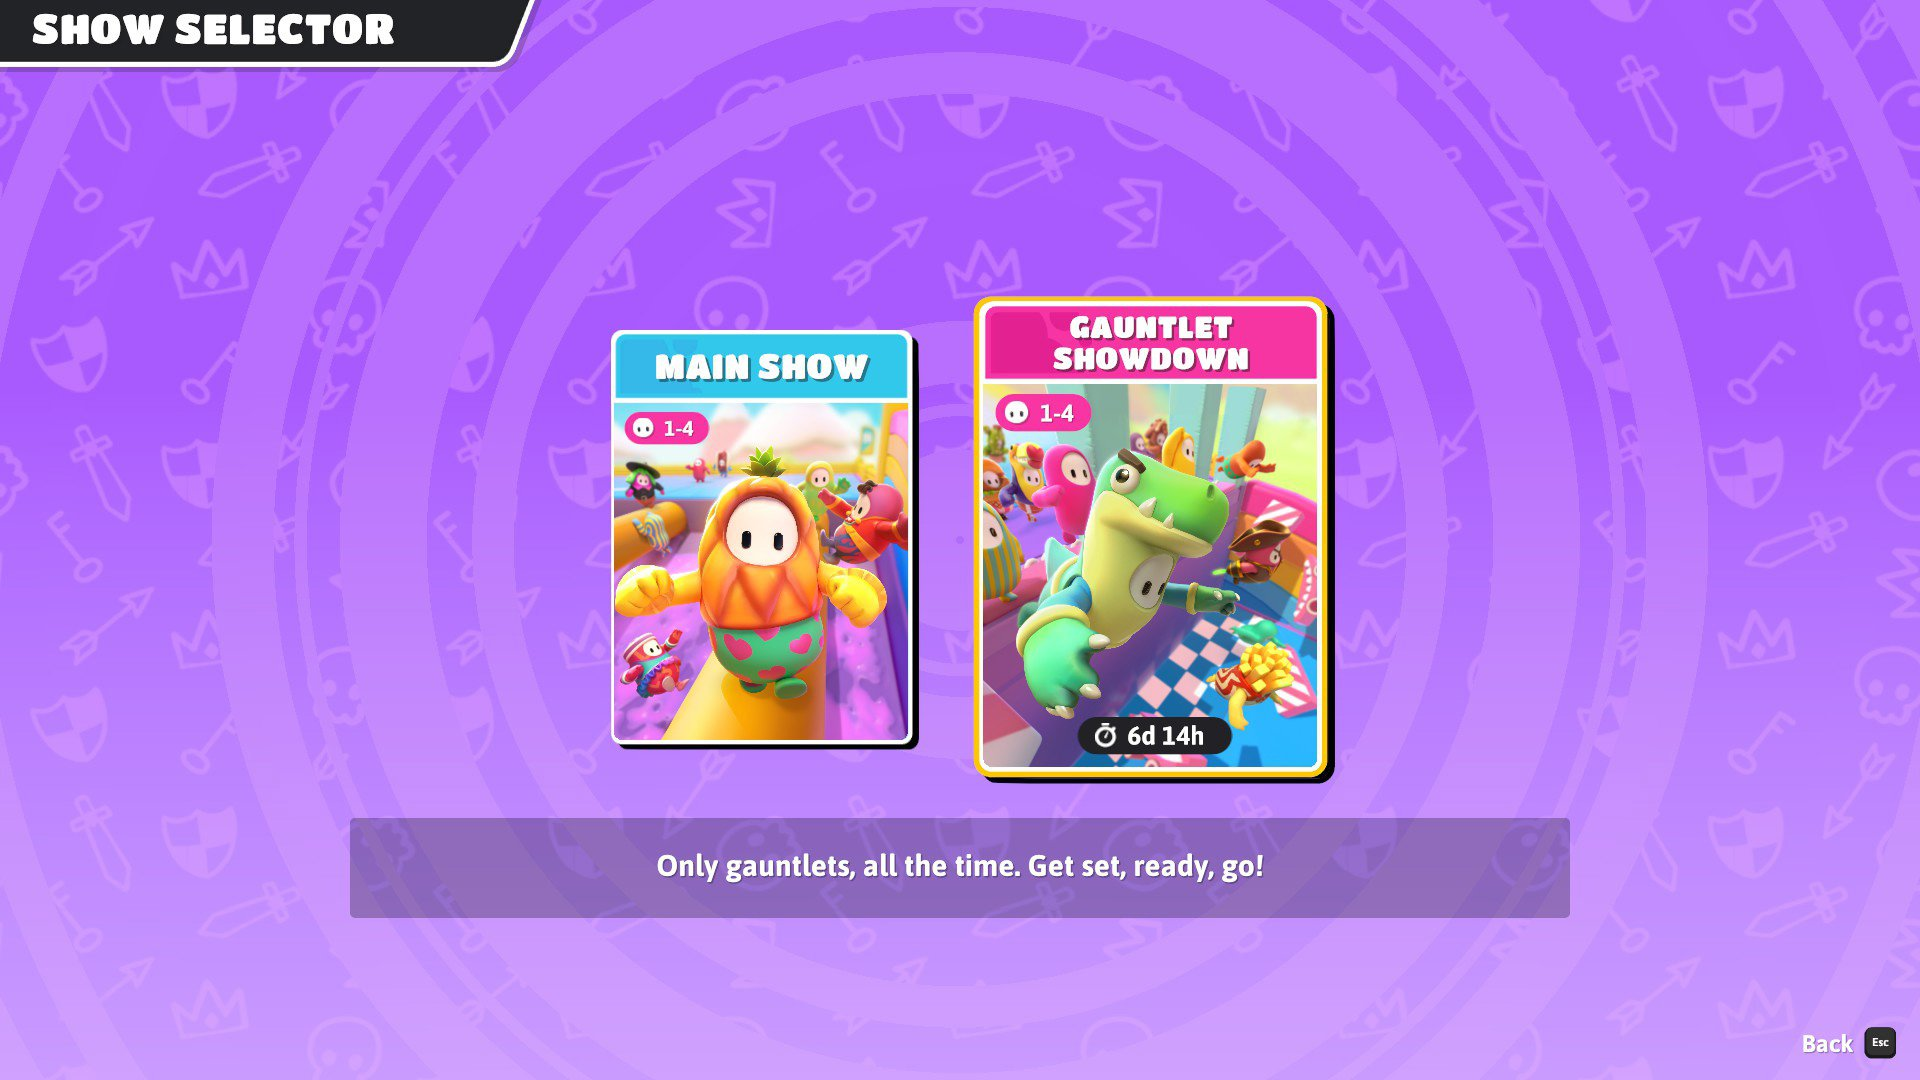 Fall Guys Season 2 has a Show Selector with new playlists